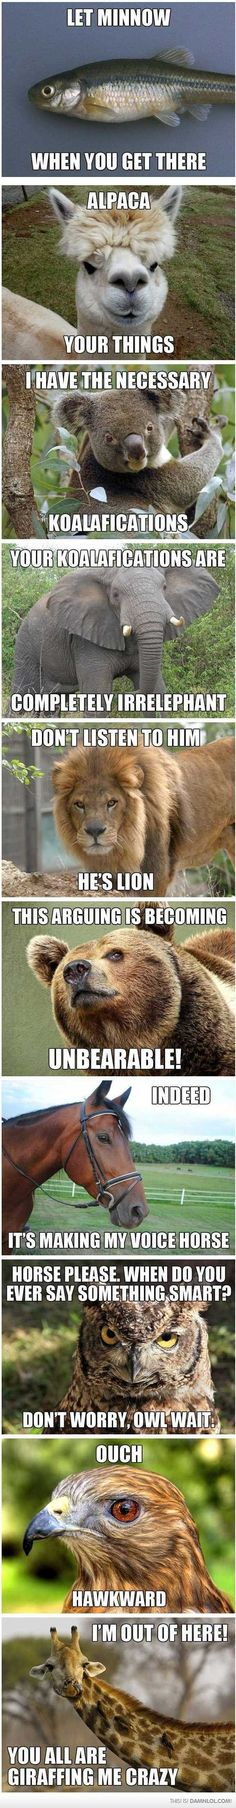 Funny animal puns are funny...